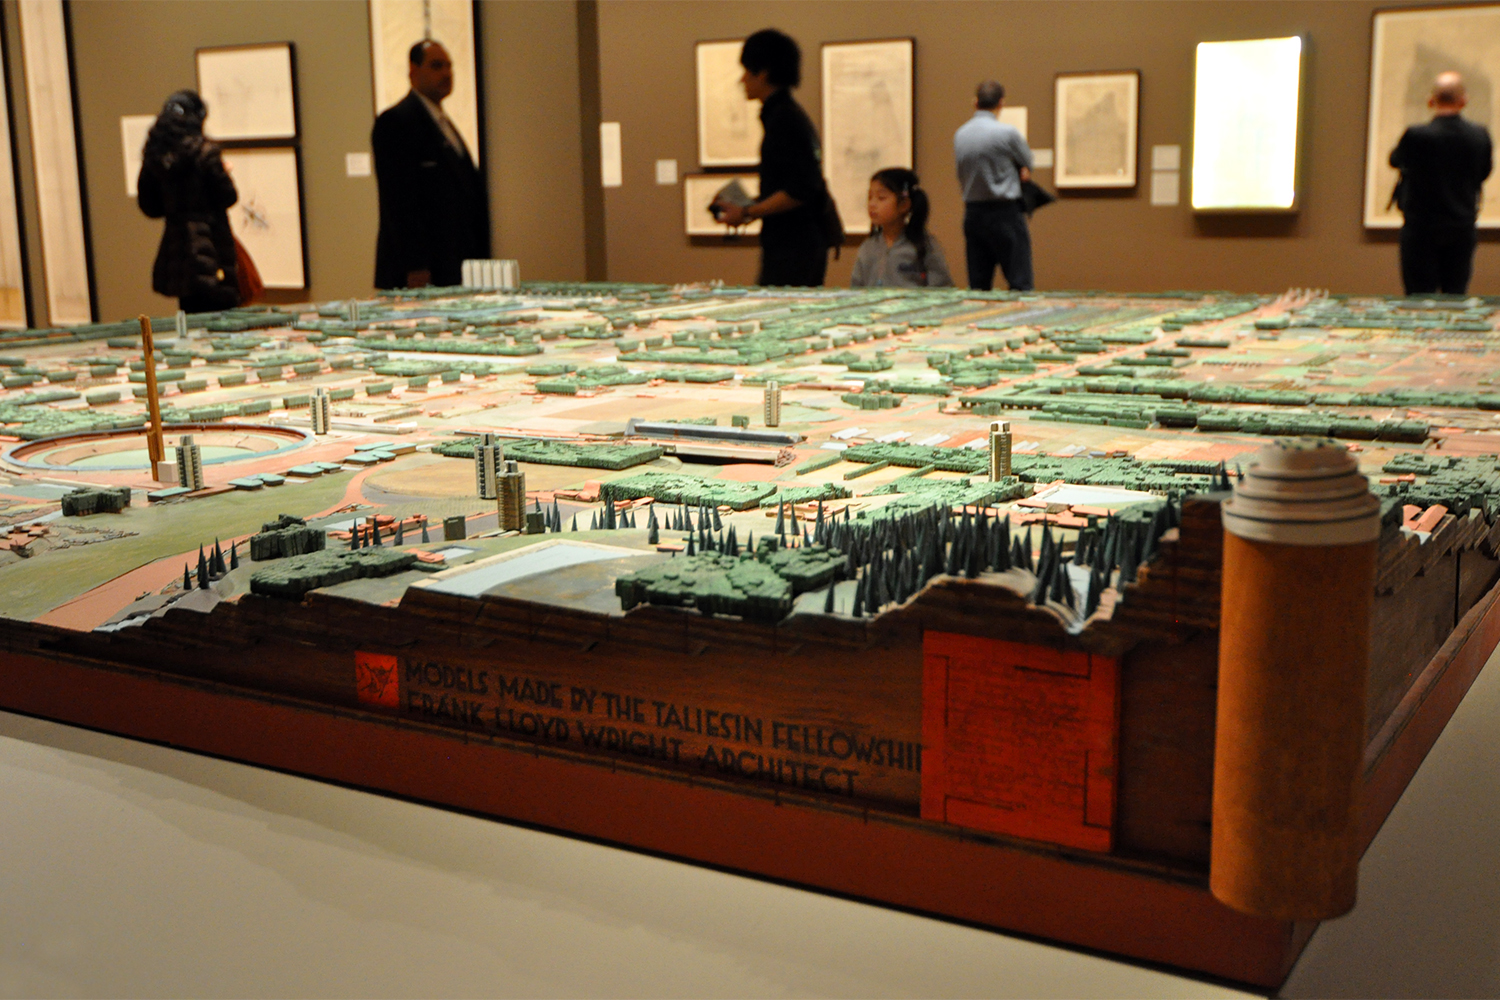 moma u0026 39 s chief curator of architecture and design addresses